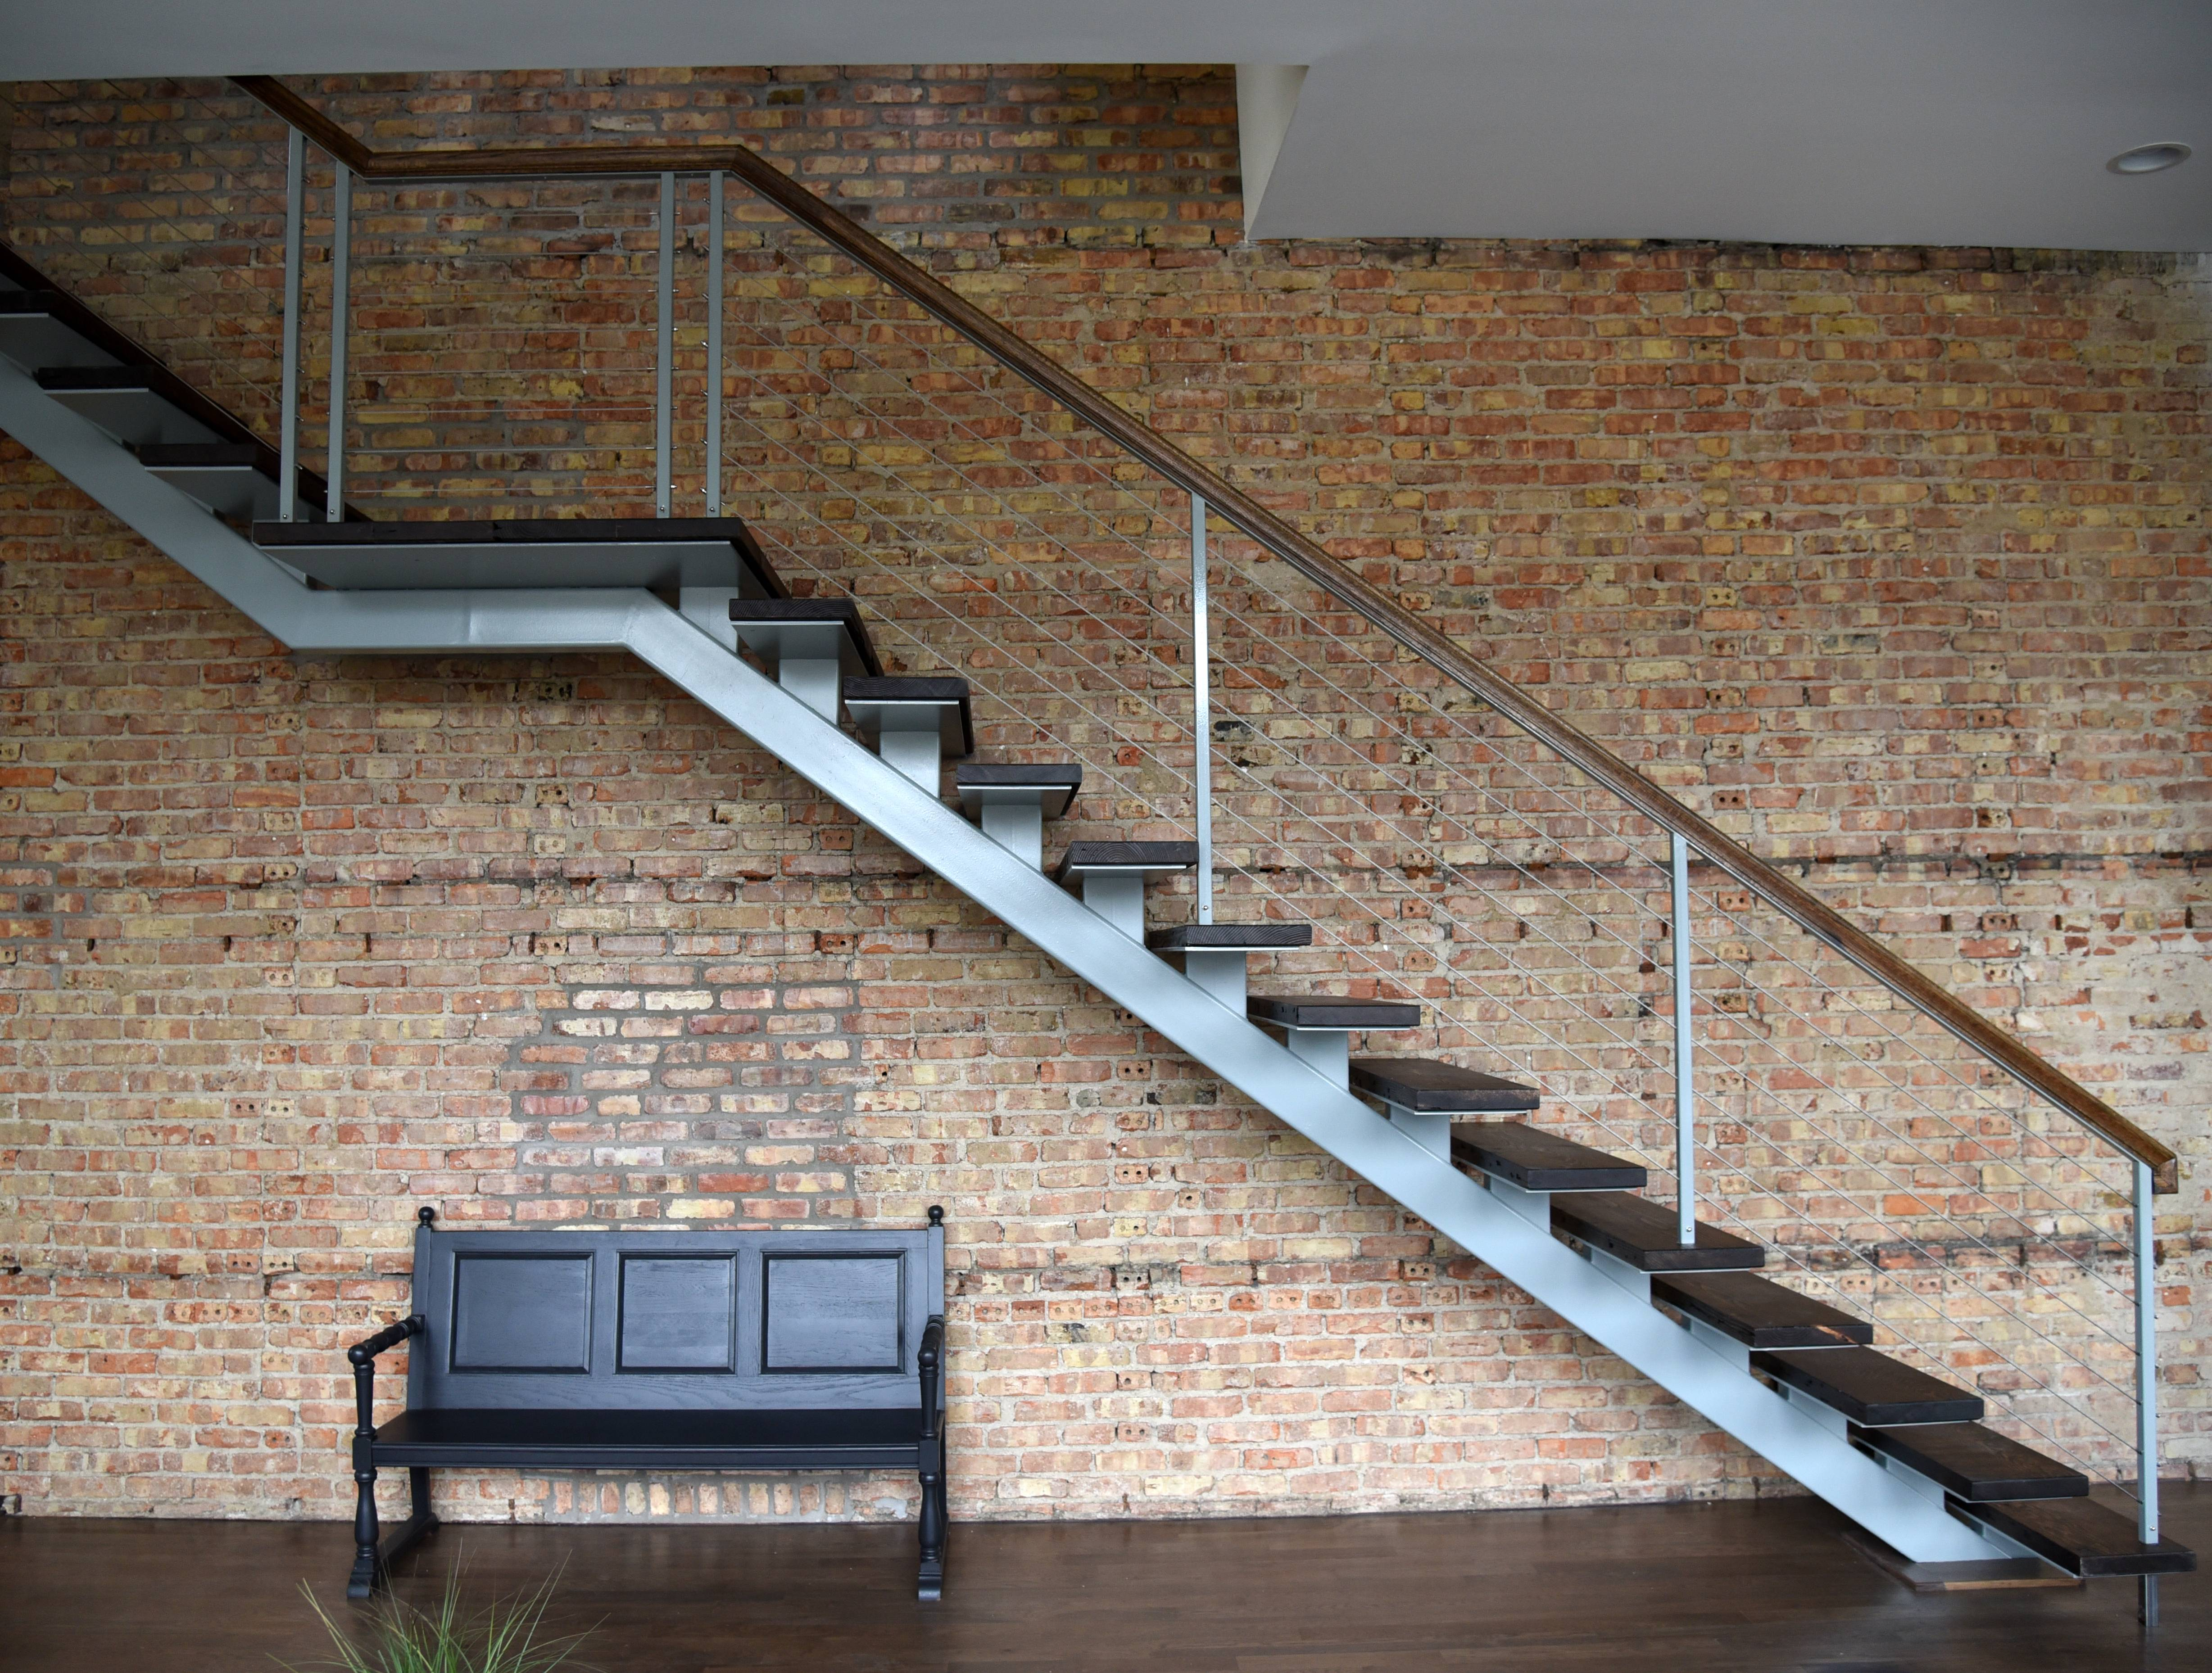 An exposed brick wall and new staircase highlight the downstairs rehab being done at the former Blaine Street School, a 111-year-old building in Batavia.